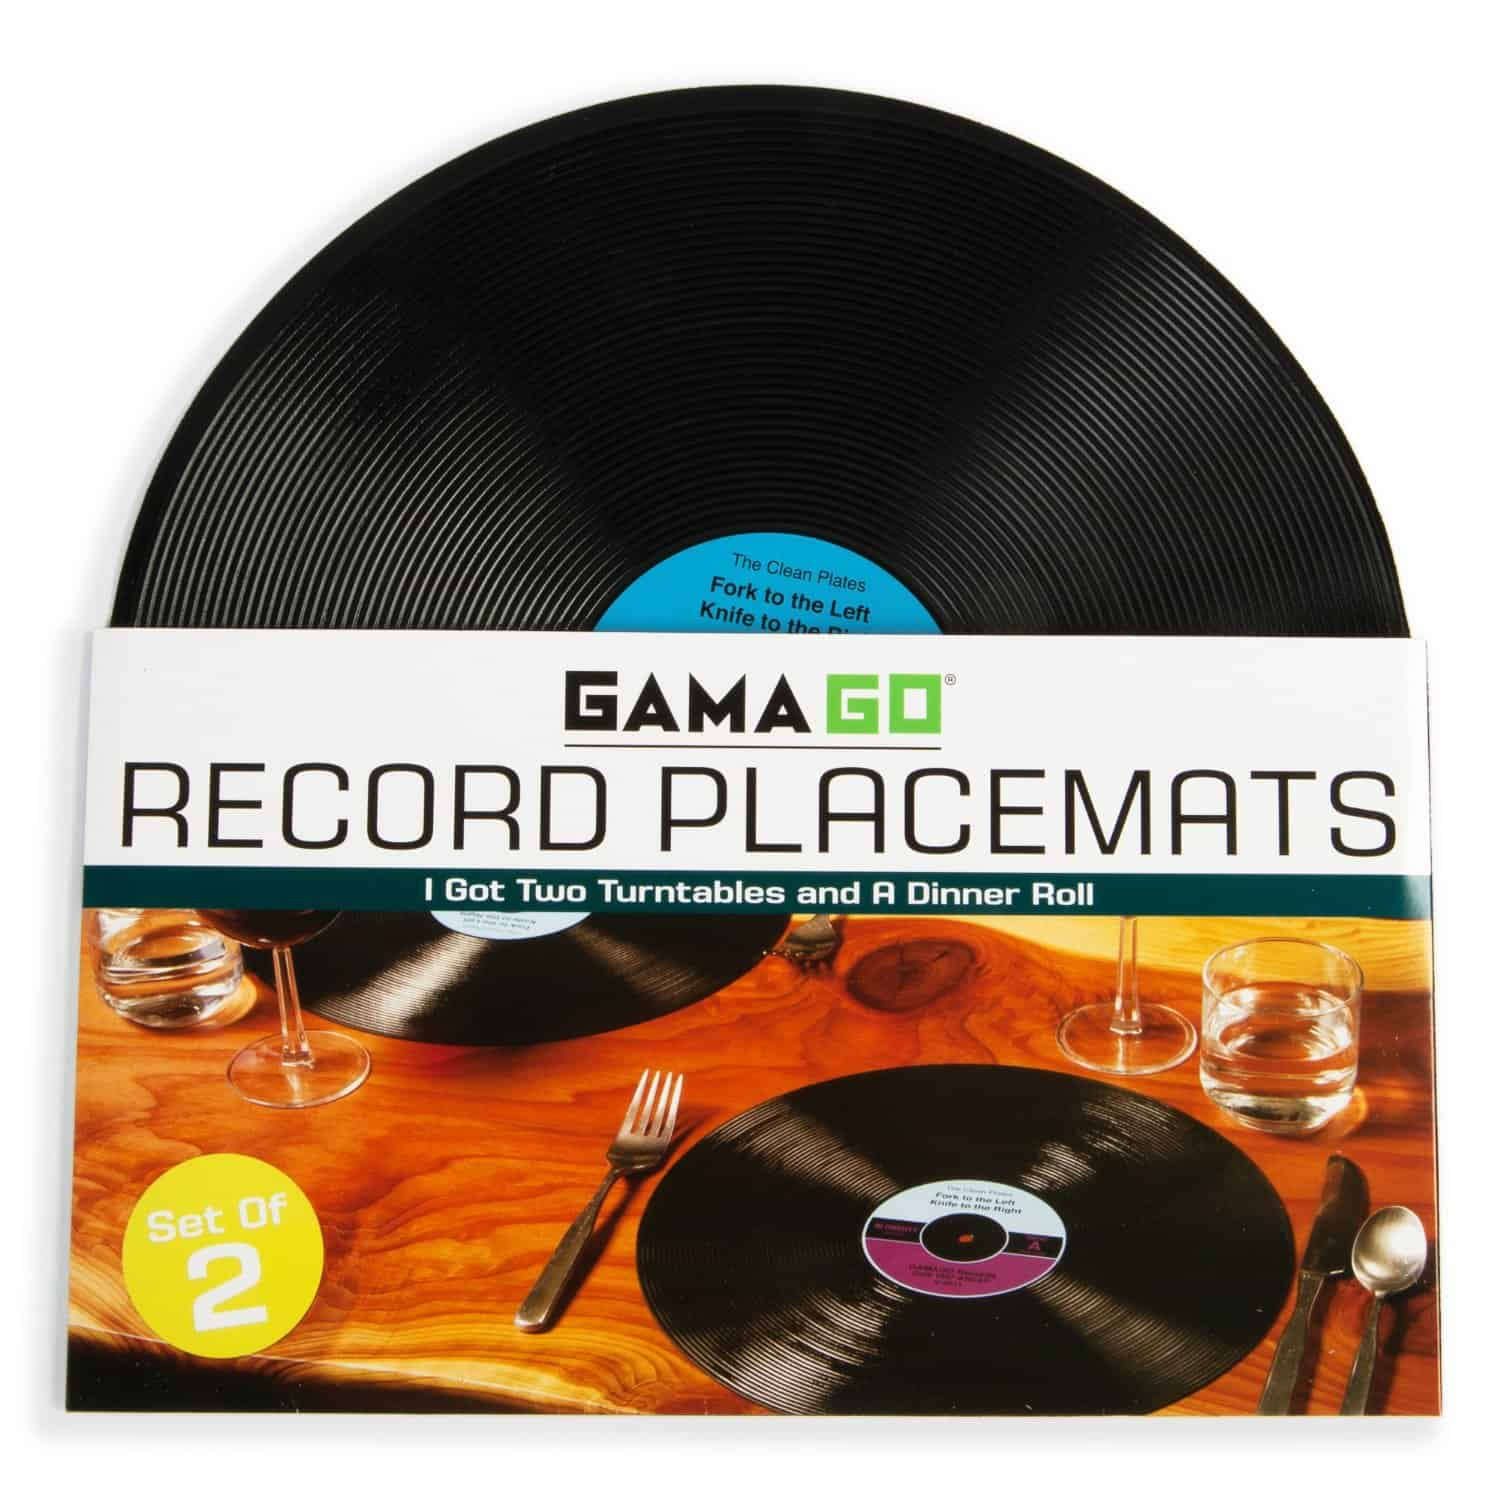 Silicone Record Placemats Unique Gift Idea Kitchen and Dining Related